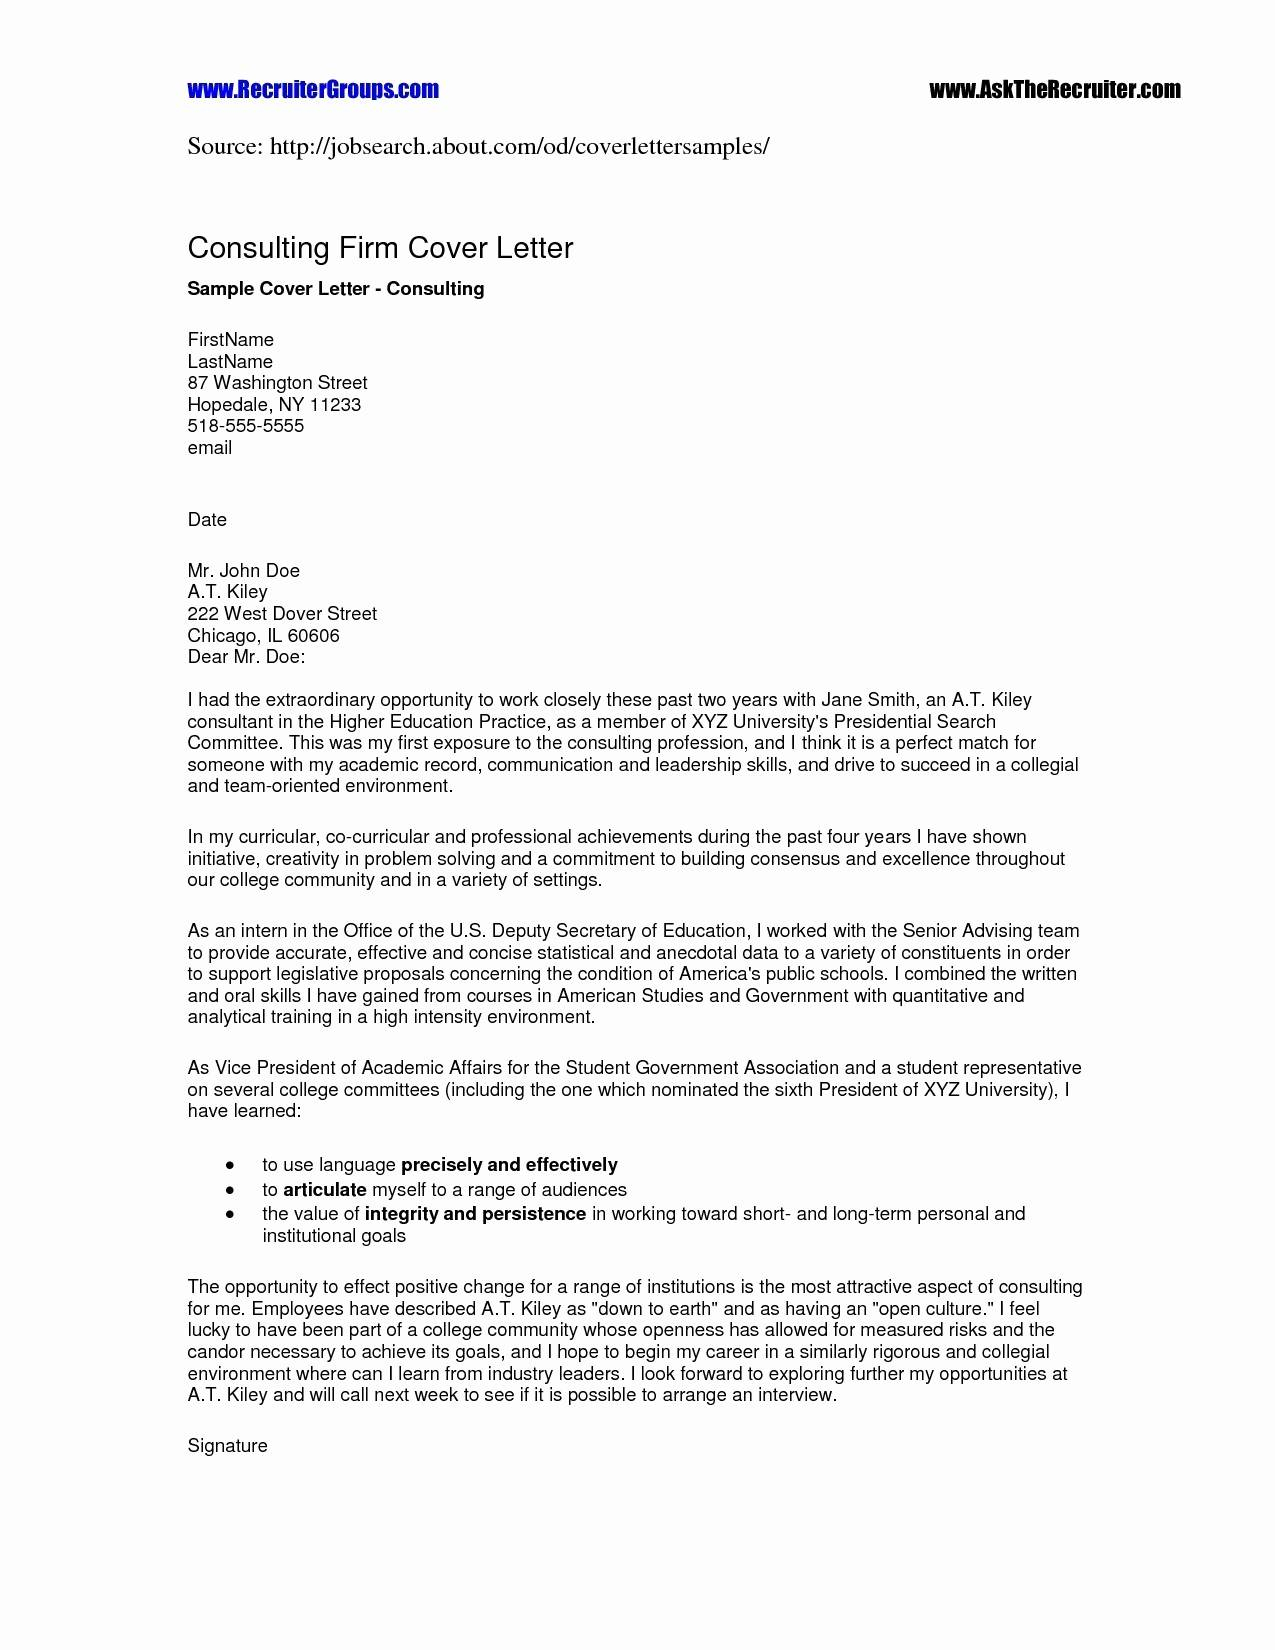 Business Introduction Letter Template - Self Introduction Letter Template Awesome Lovely Business